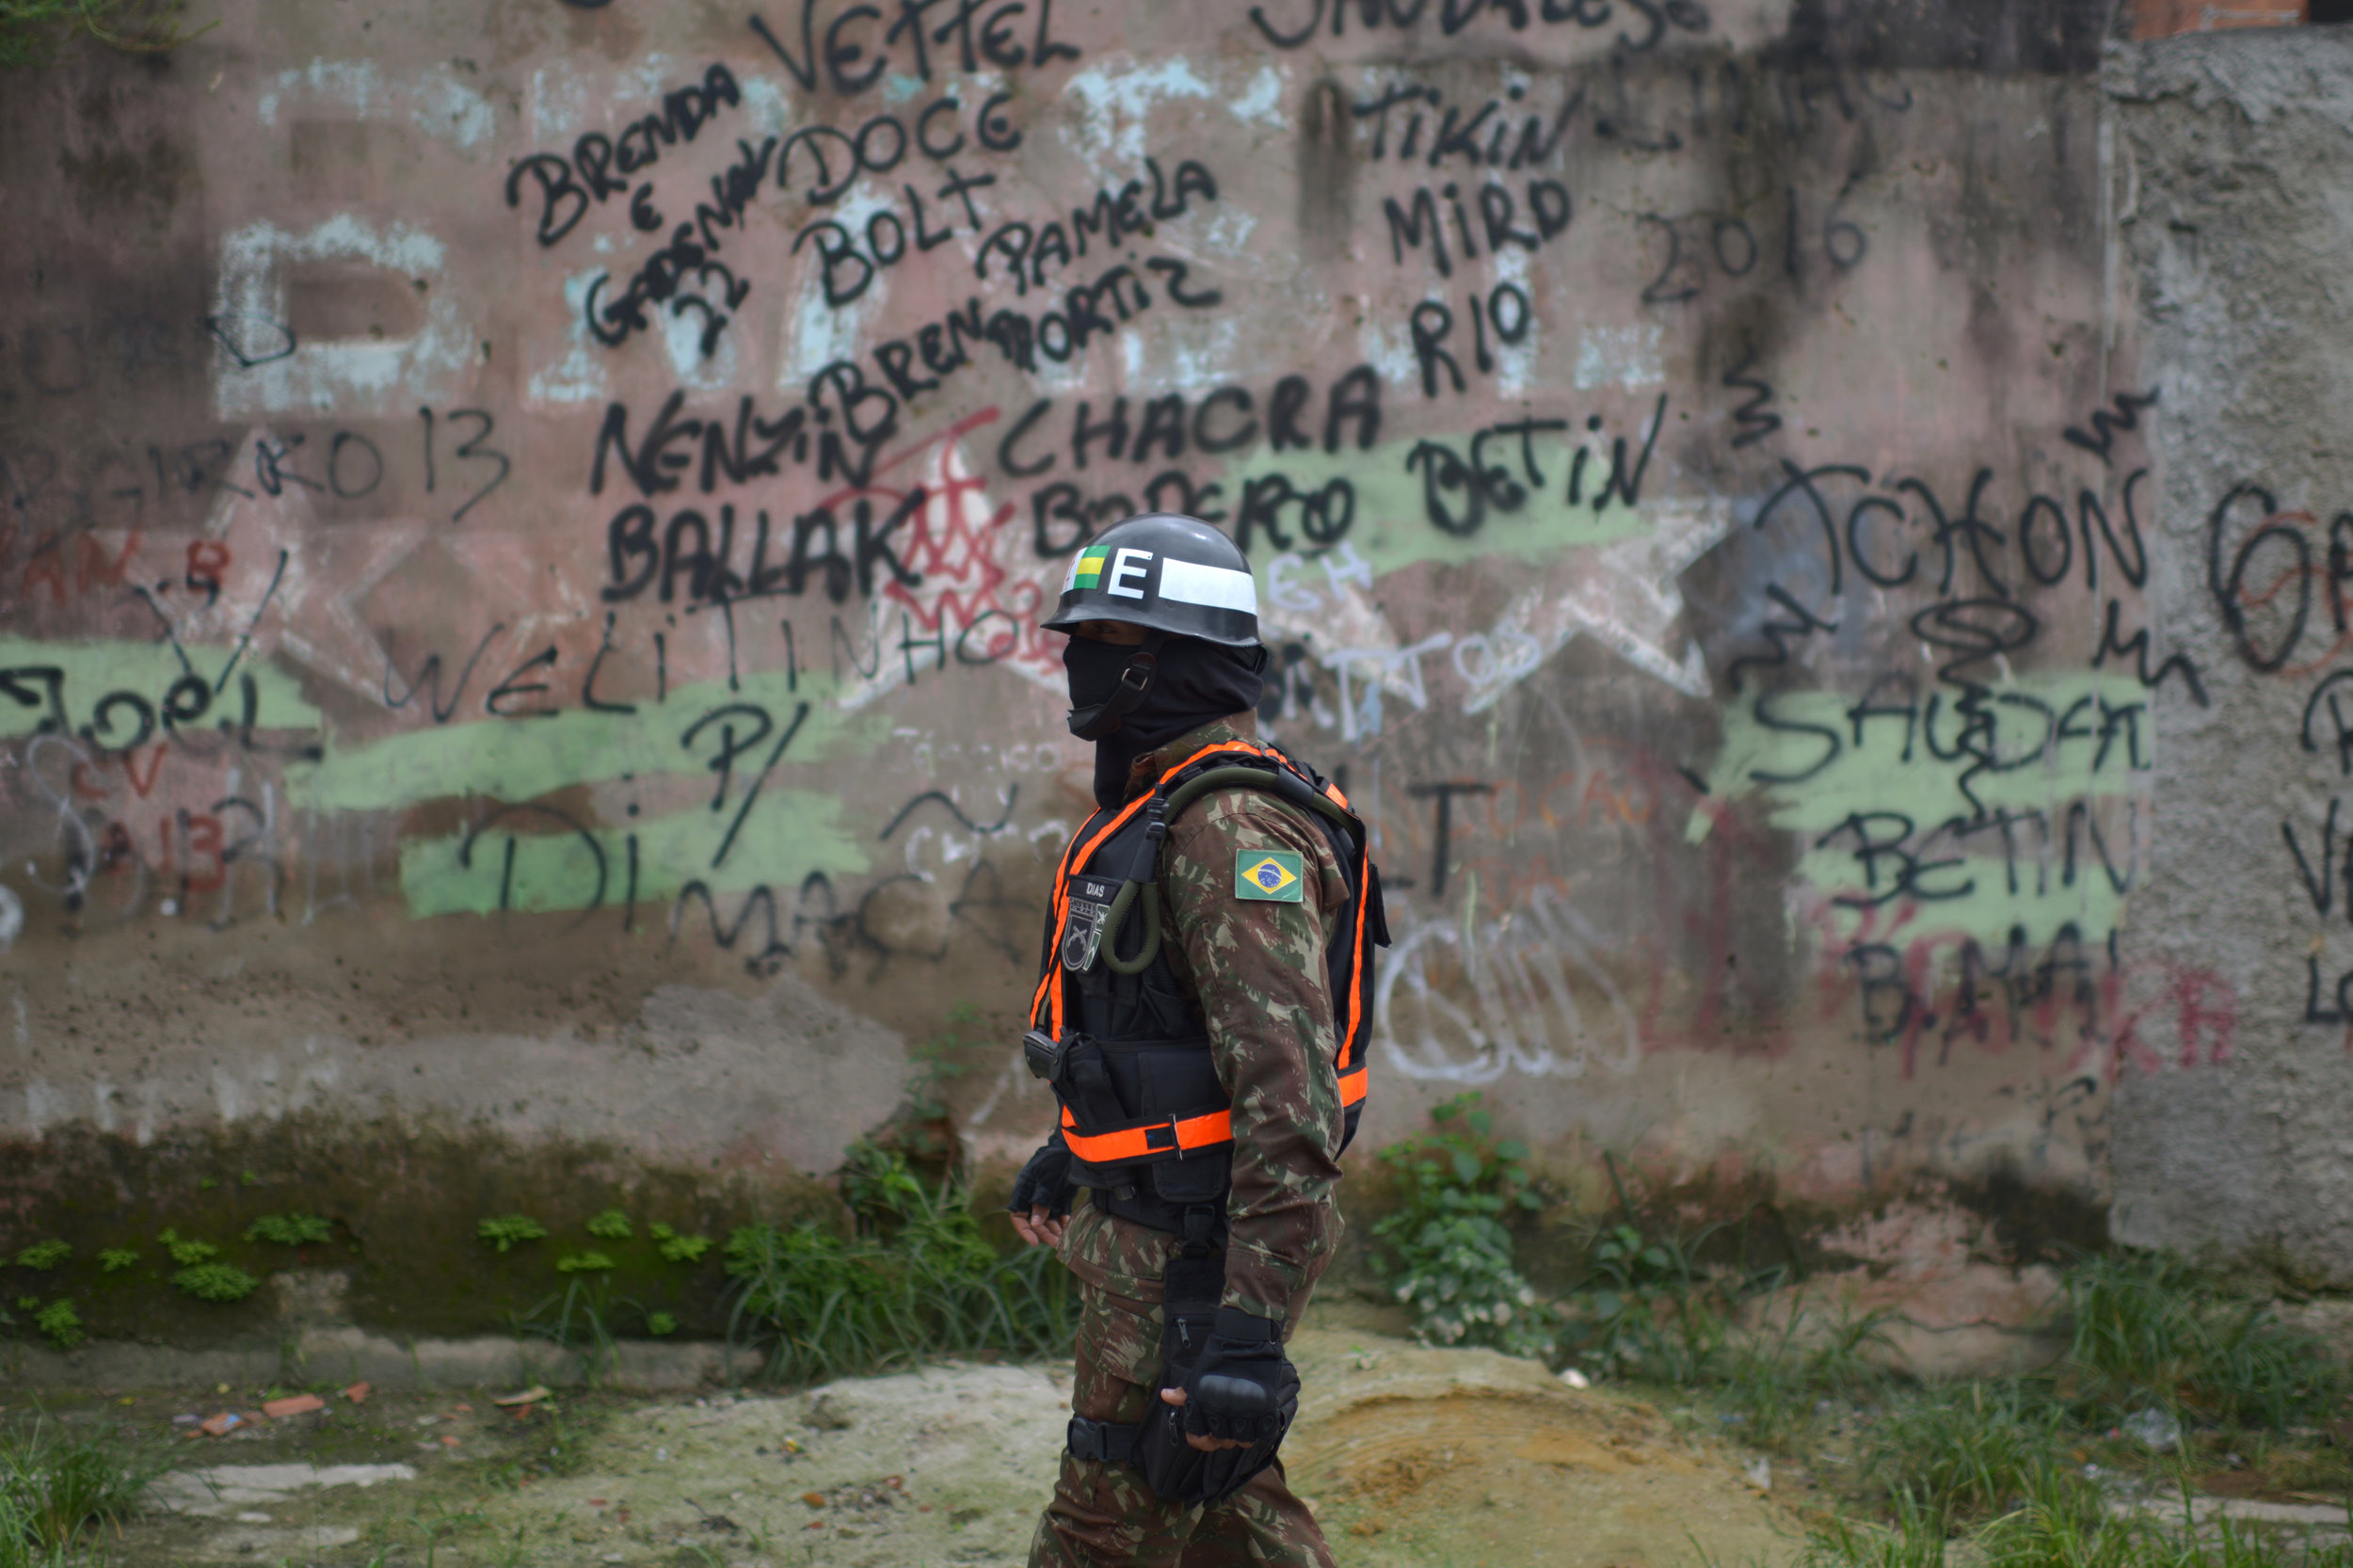 March, 17, 2018. 10:30am. A soldier at Vila Kennedy, Rio de Janeiro. Last month, Marielle was named rapporteur of a special commission established by the city council to monitor military intervention in Rio de Janeiro's public security.